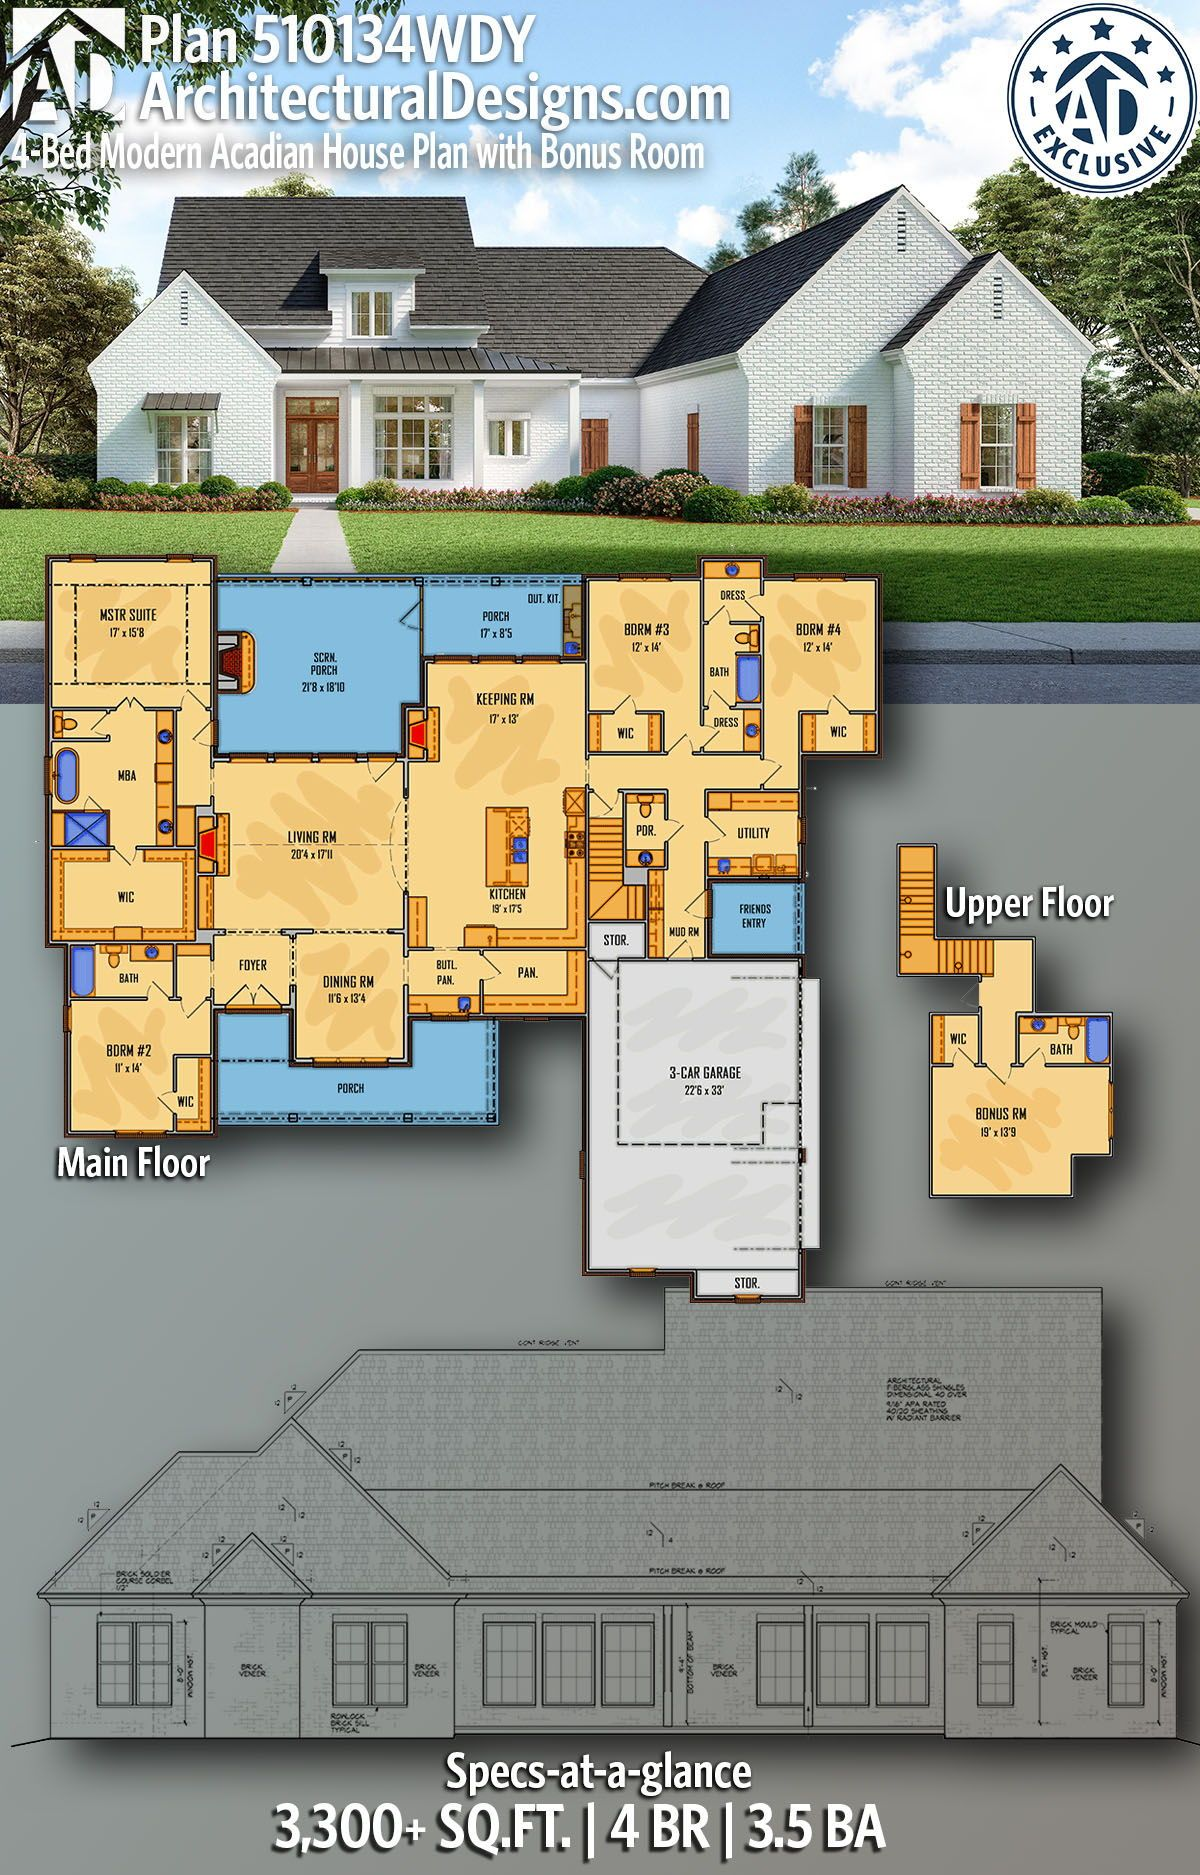 Plan 510134wdy 4 Bed Modern Acadian House Plan With Bonus Room In 2020 Acadian House Plans House Plans House Plans Farmhouse